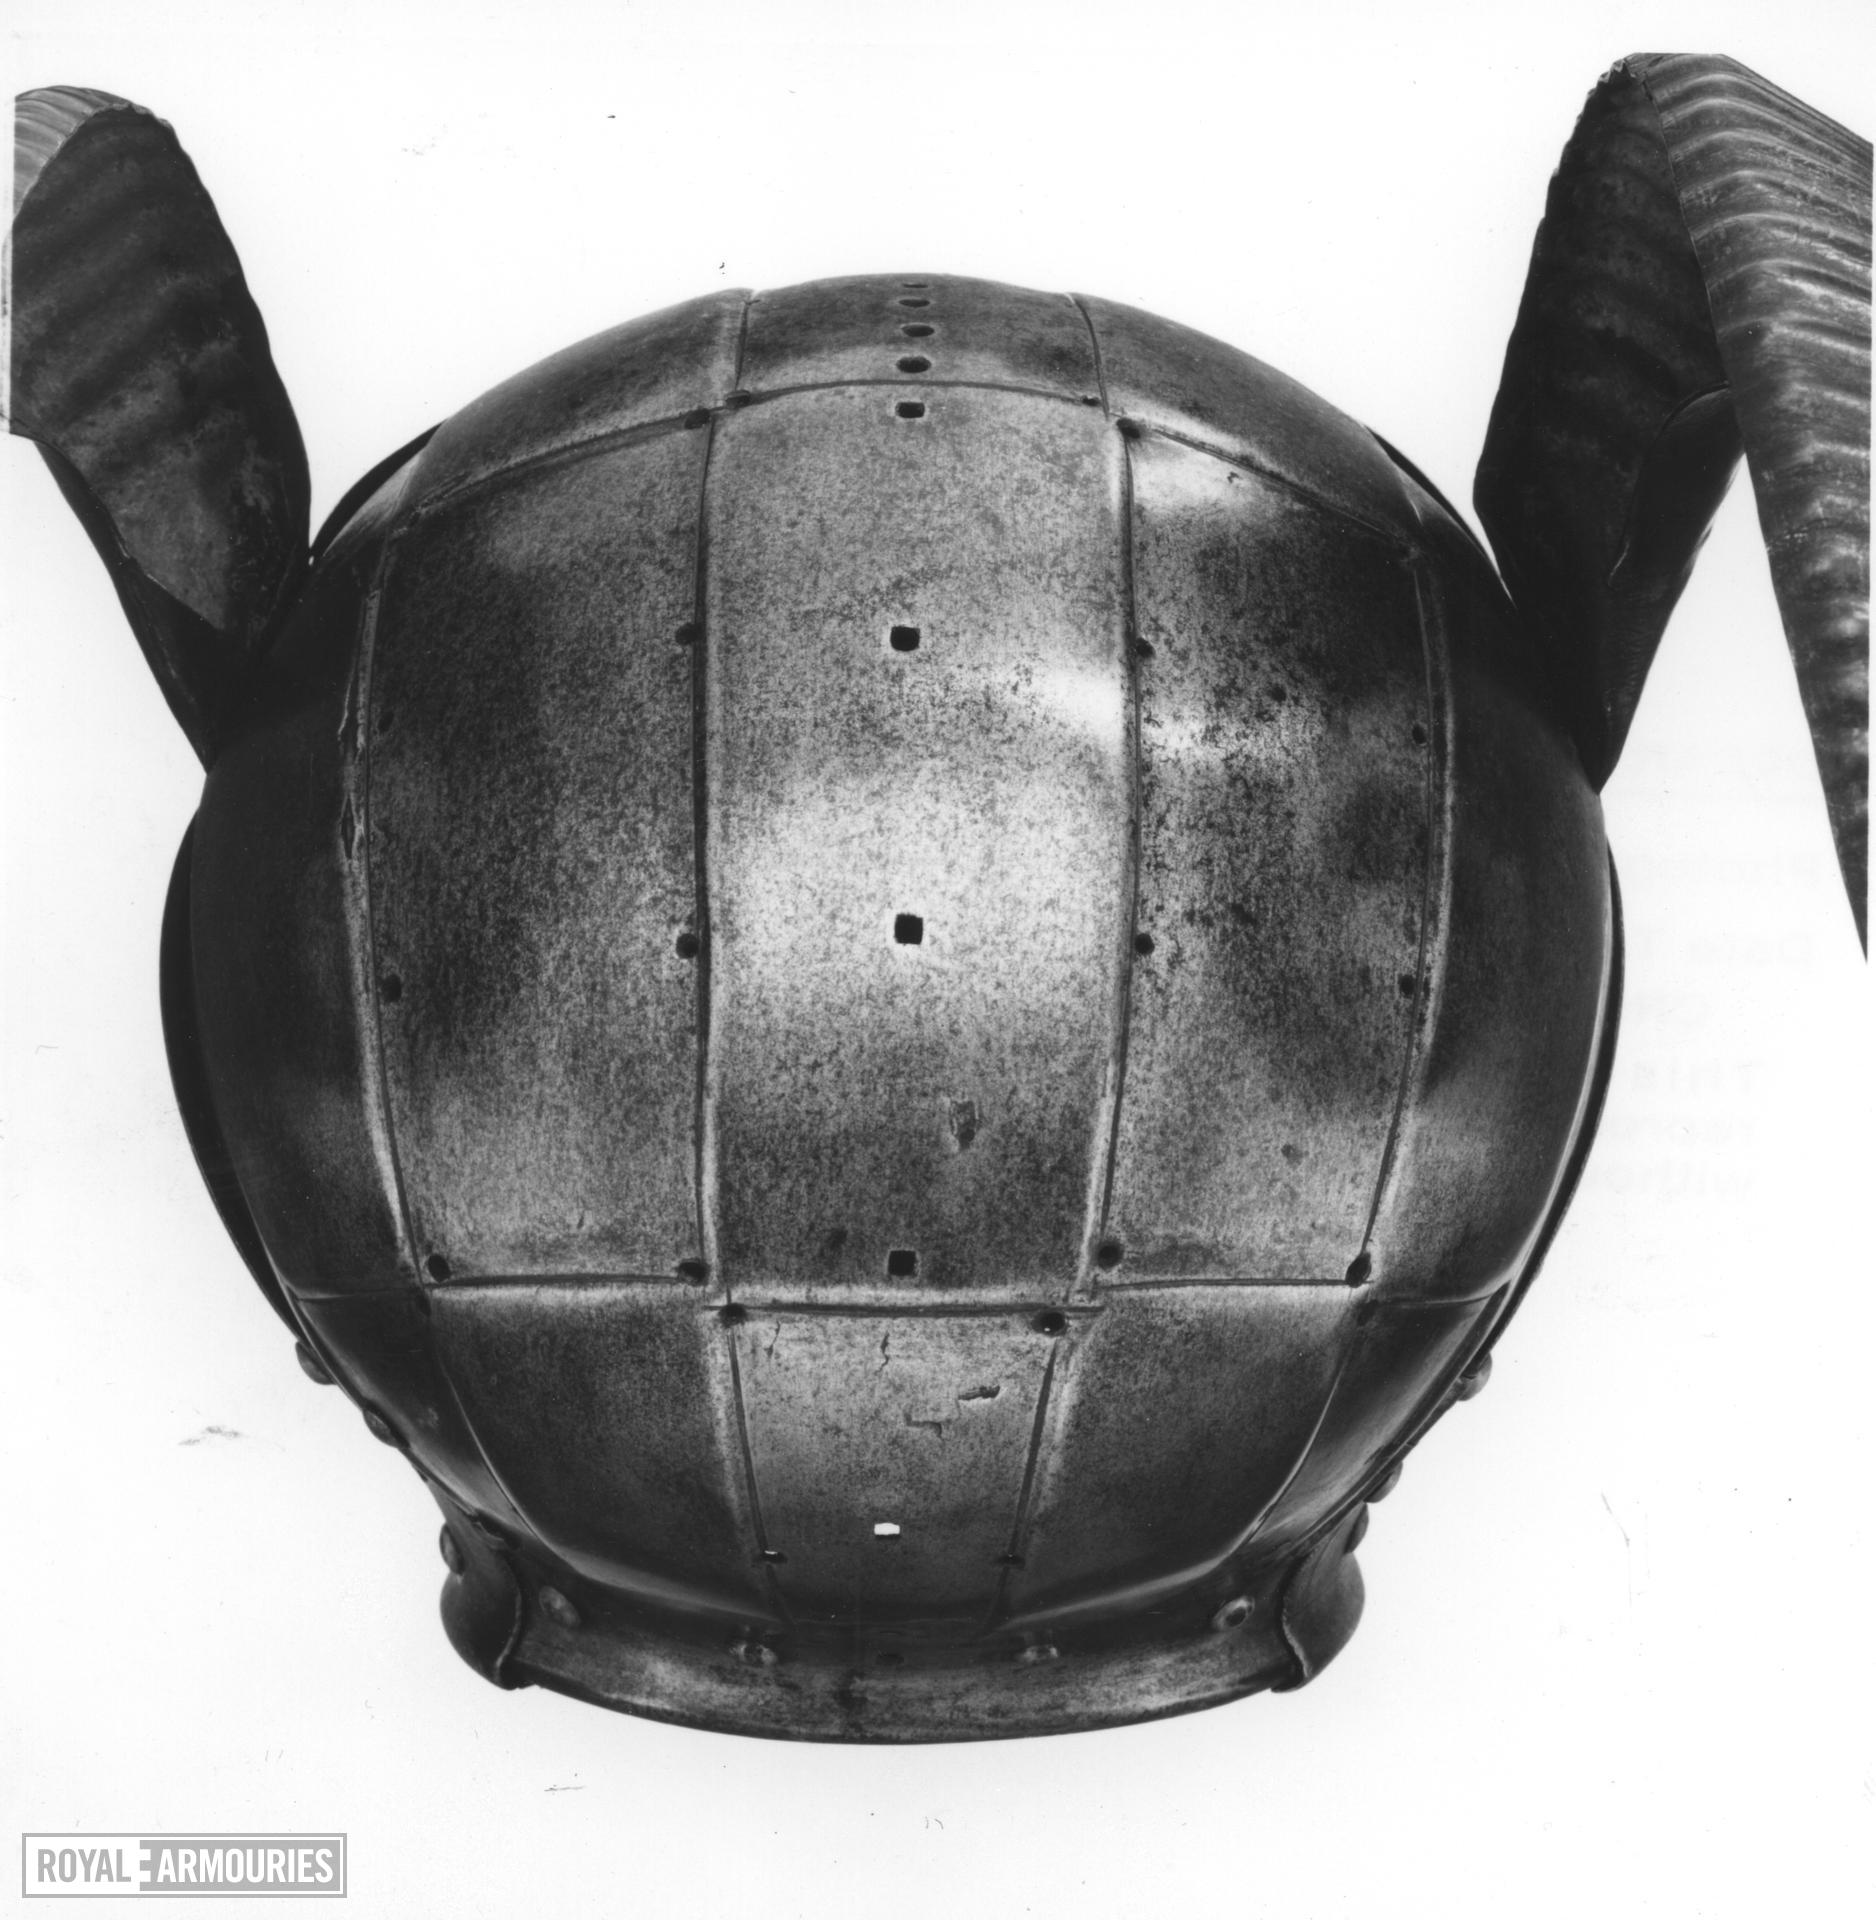 Armet - The Horned Helmet Originally forming part of an armour presented to King Henry VIII by the Emperor Maximilian I in 1514 and made by Konrad Seusenhofer. The horned helmet.